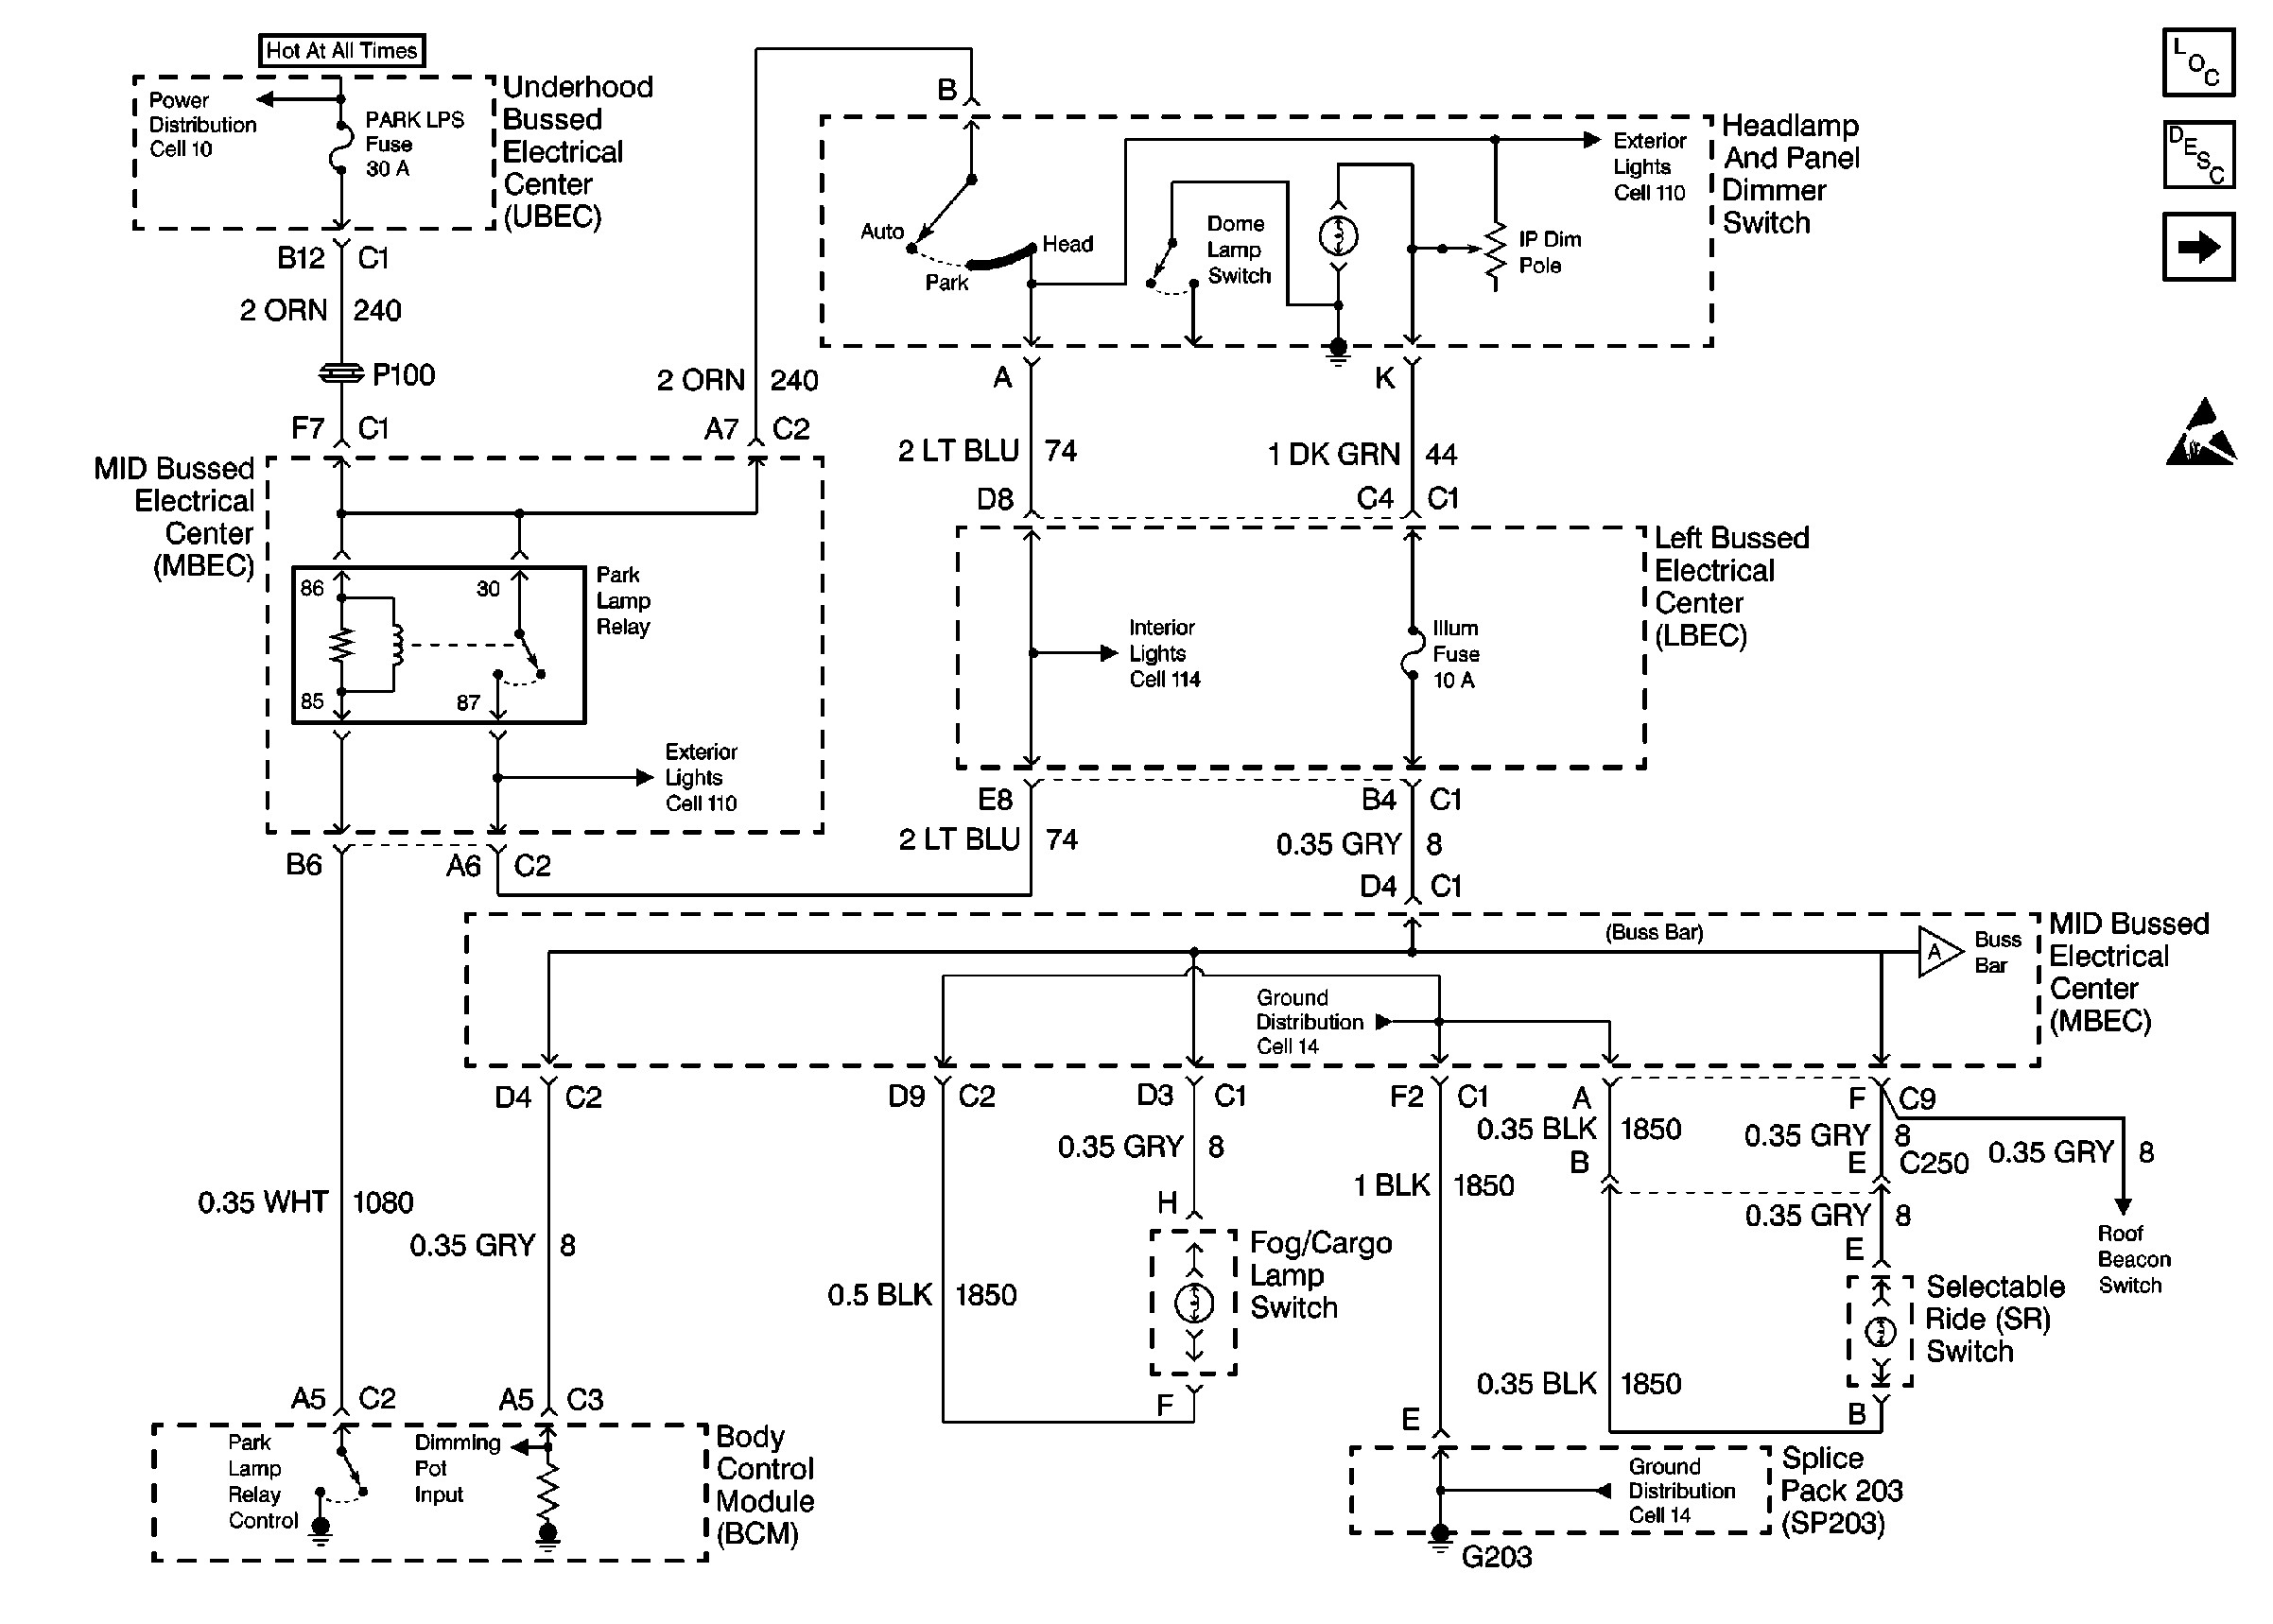 chevy tahoe trailer wiring diagram Download-2003 Chevy Tahoe Radio Wiring Diagram Diagram 2008 Impala Headlight Wiring Diagram Chevy Equinox 2007 Pnp Wiring Diagram 12-m